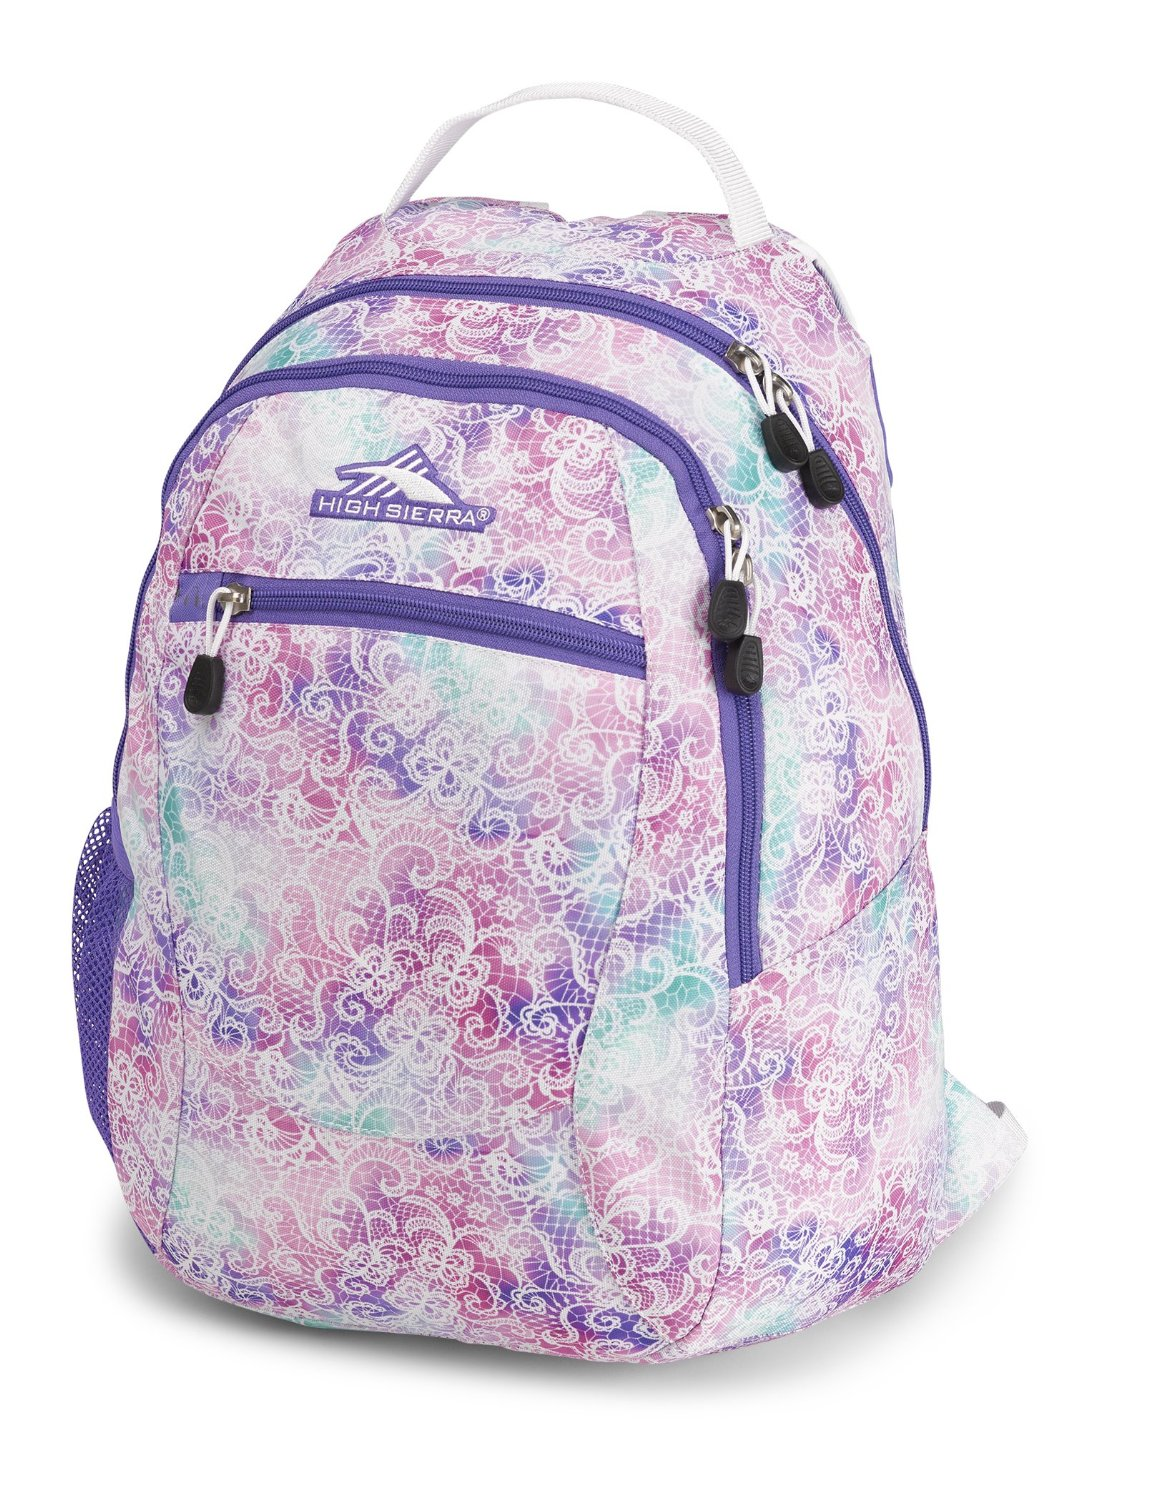 High Sierra Curve School Backpack for Girls (and Boys)